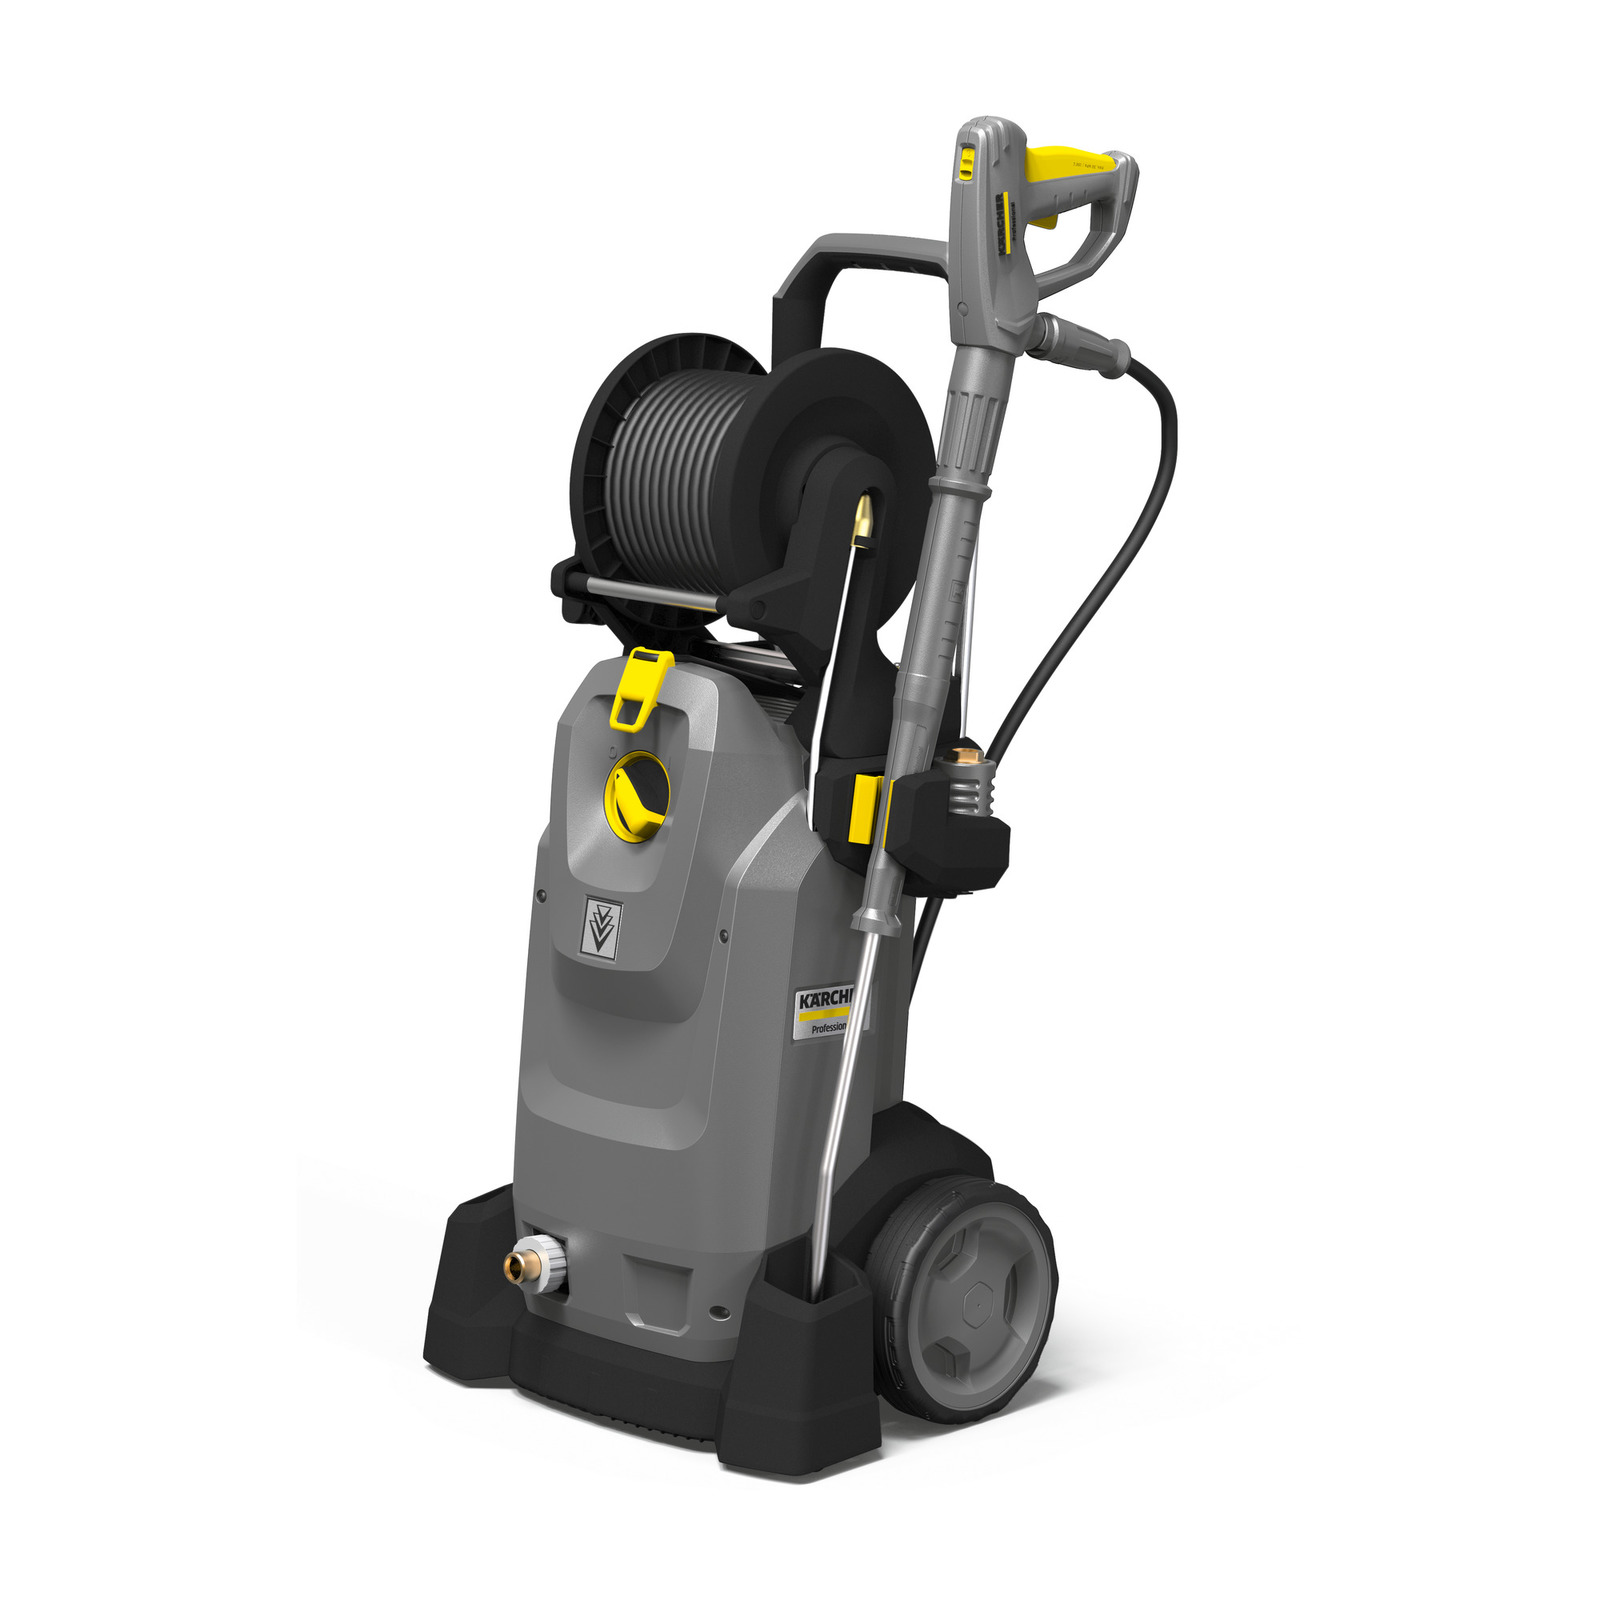 KARCHER - HD 7/14 – 4 MX Plus